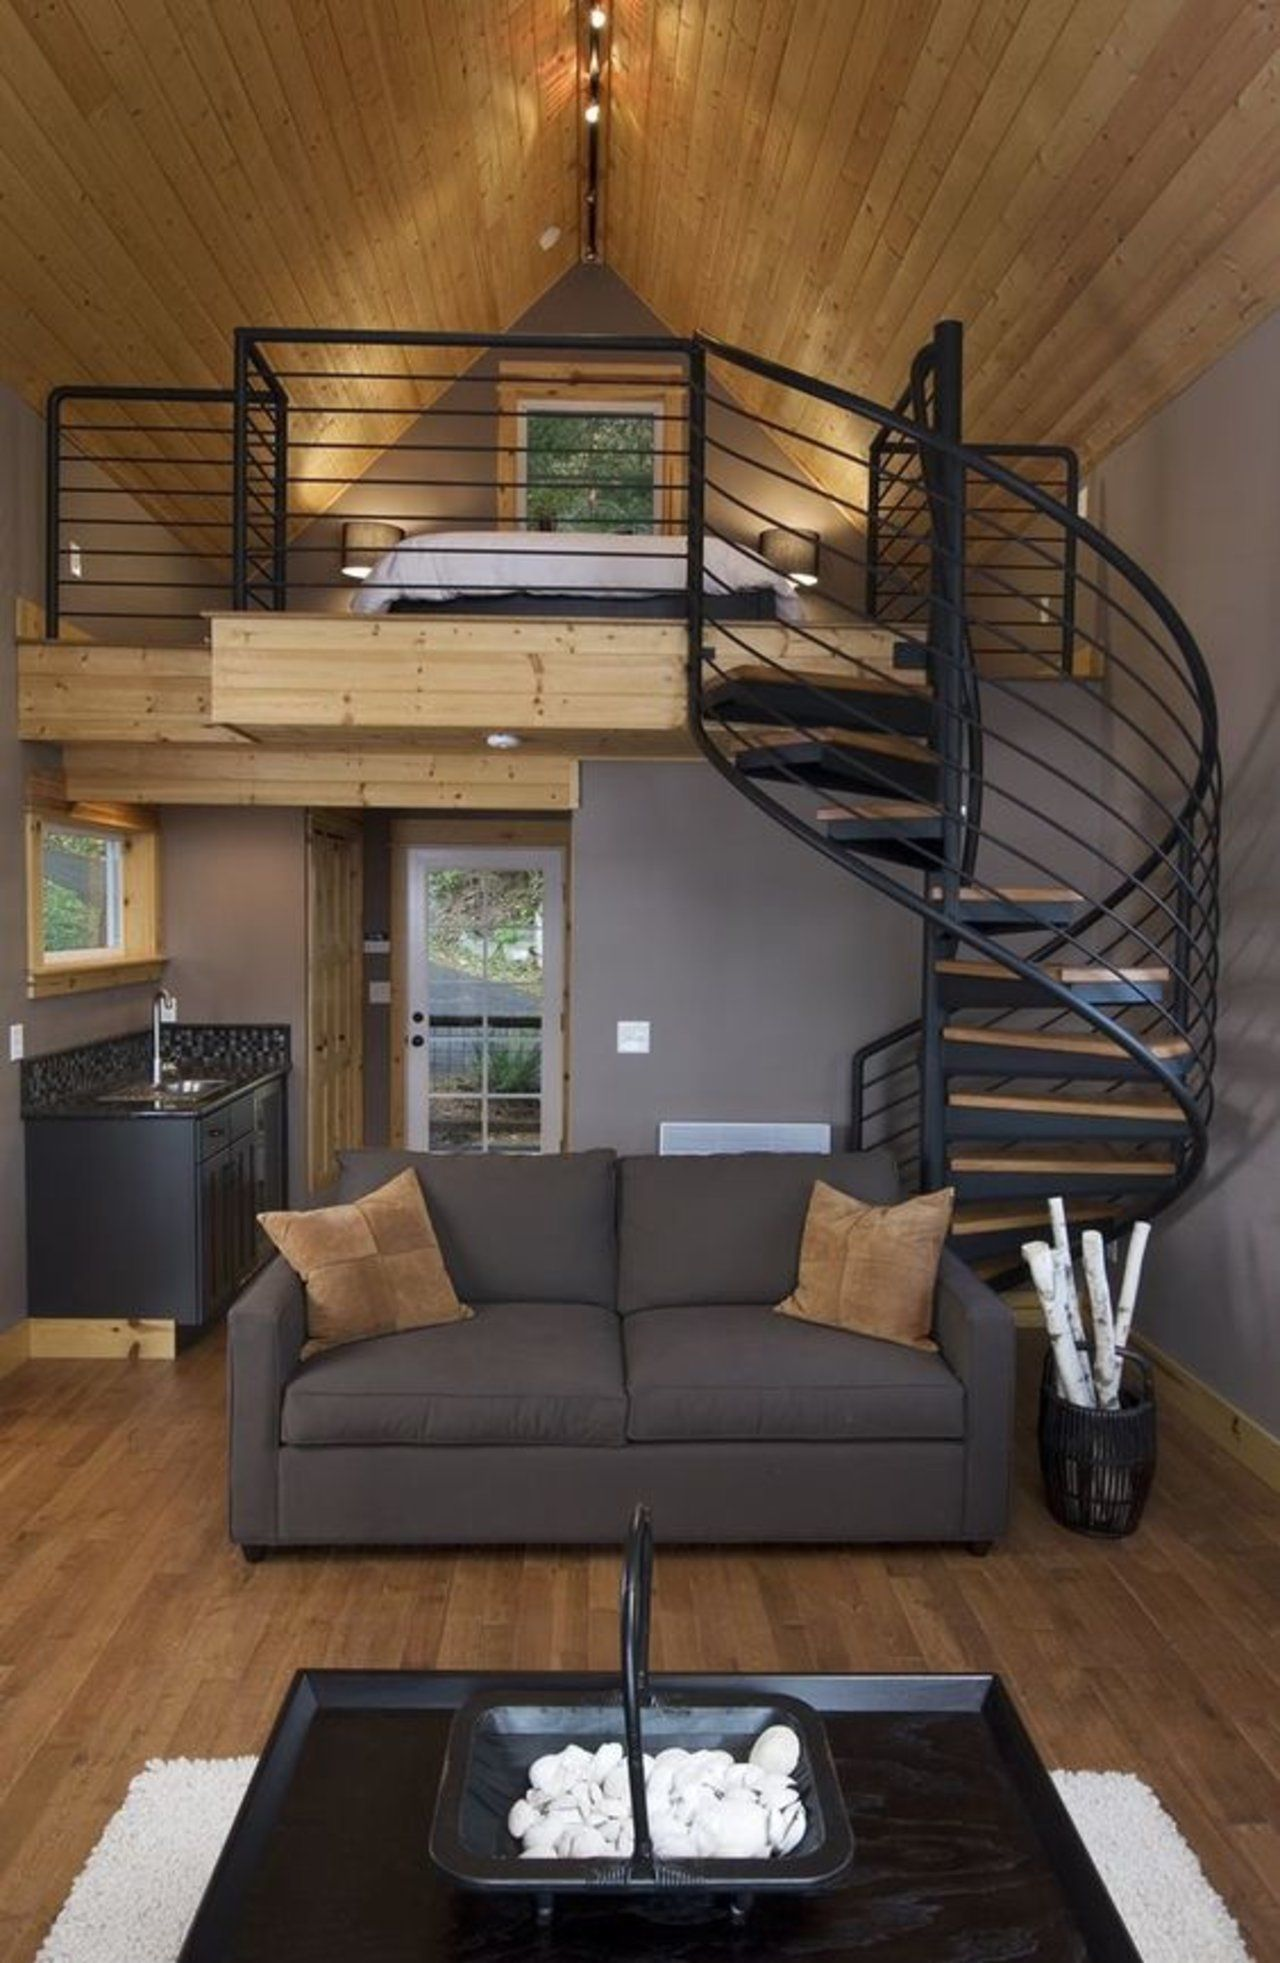 The Best Tiny House Build White appliances Wood stairs and